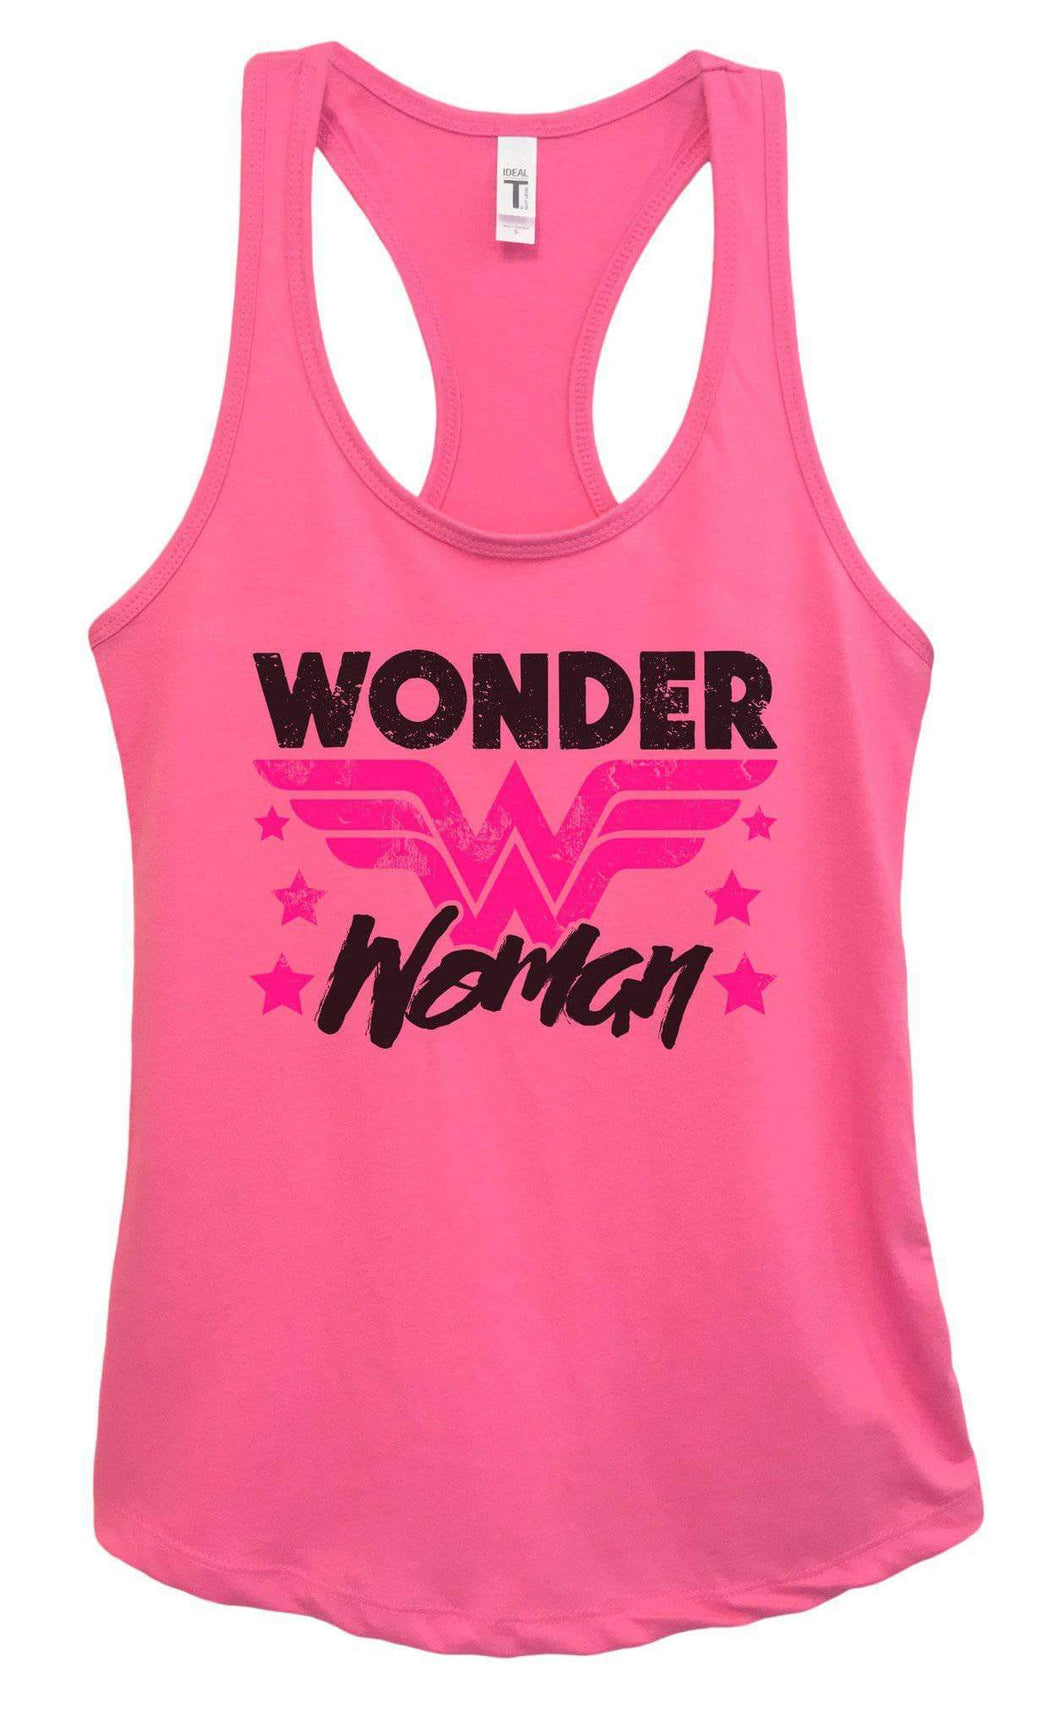 Womens Wonder Woman Grapahic Design Fitted Tank Top Small Womens Tank Tops Fuchsia